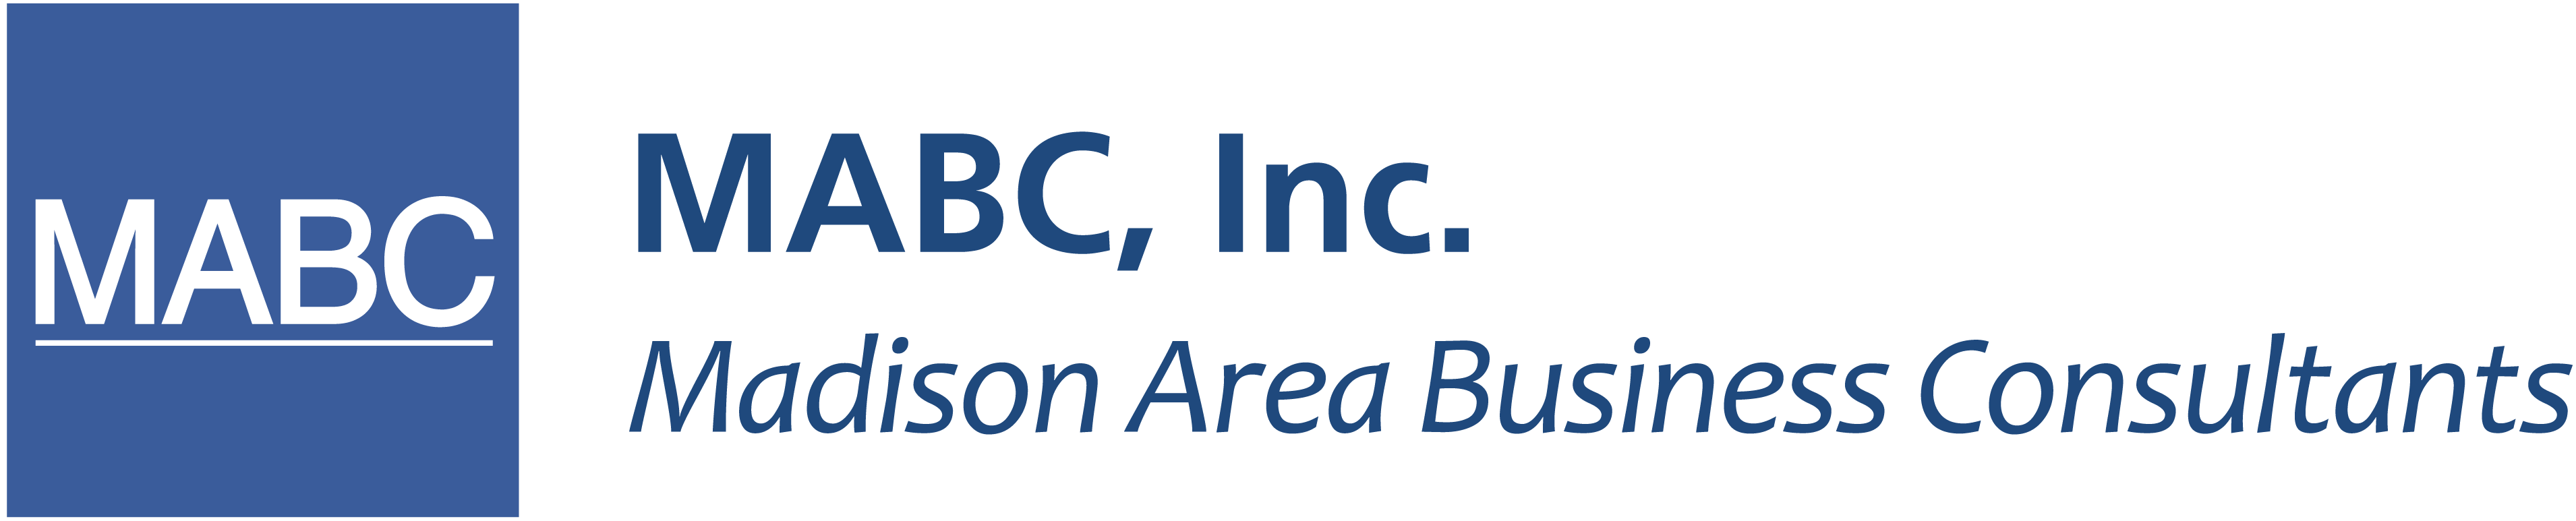 Madison Area Business Consultants founded in 1987 to elevate business consulting to its finest.